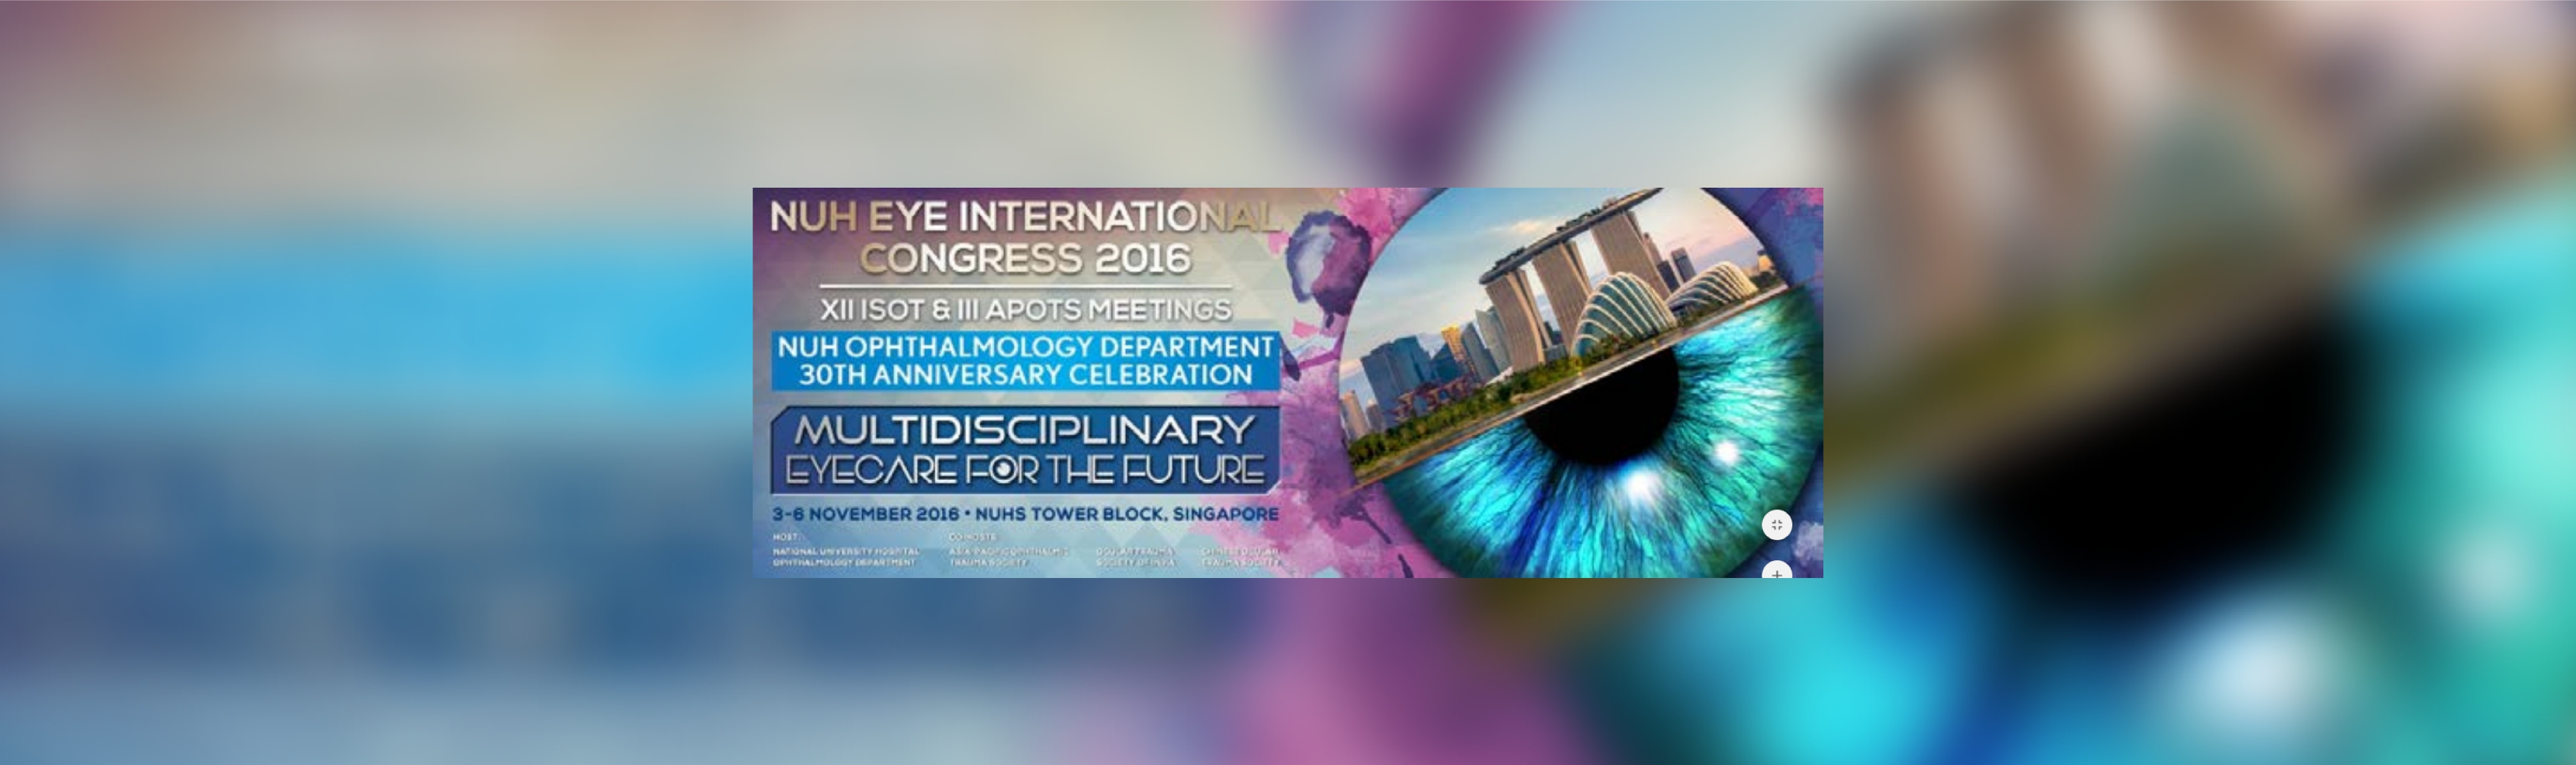 NUH Eye International Congress 2016 XII ISOT and III APOTS Meetings